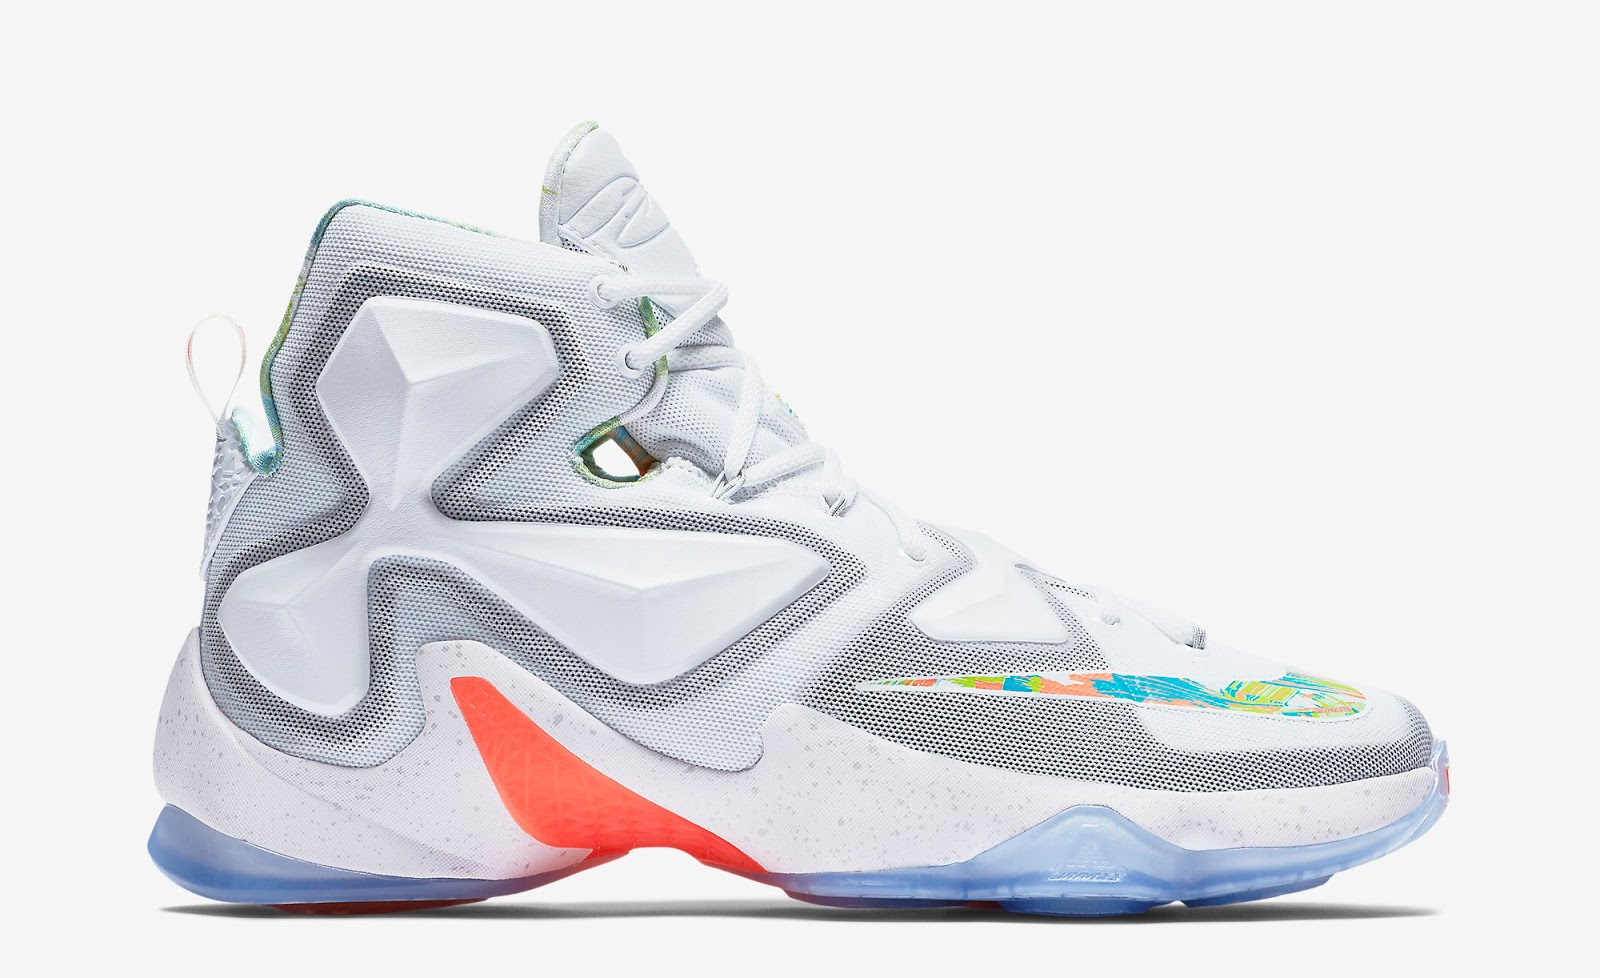 c42b044b7699ee ajordanxi Your  1 Source For Sneaker Release Dates  Nike LeBron 13 ...